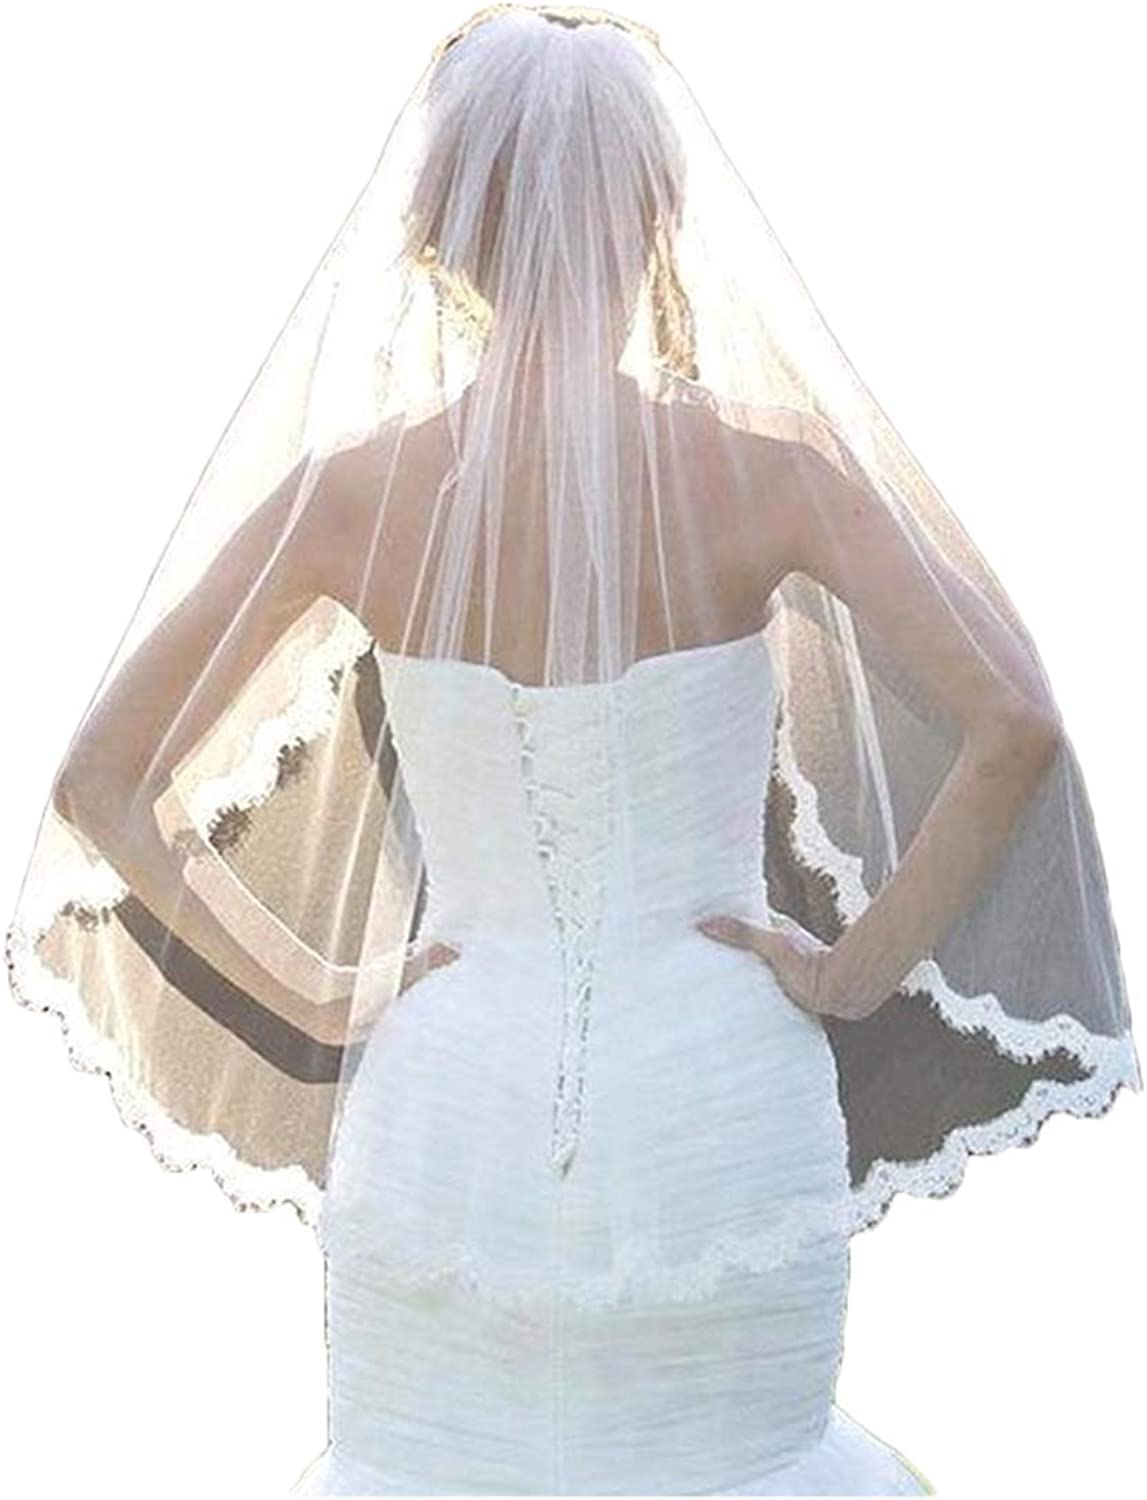 Jin'sshop 2018 New Short Wedding Veil For Bride One Tier ivory Simple Appliques Bridal Veils With Comb